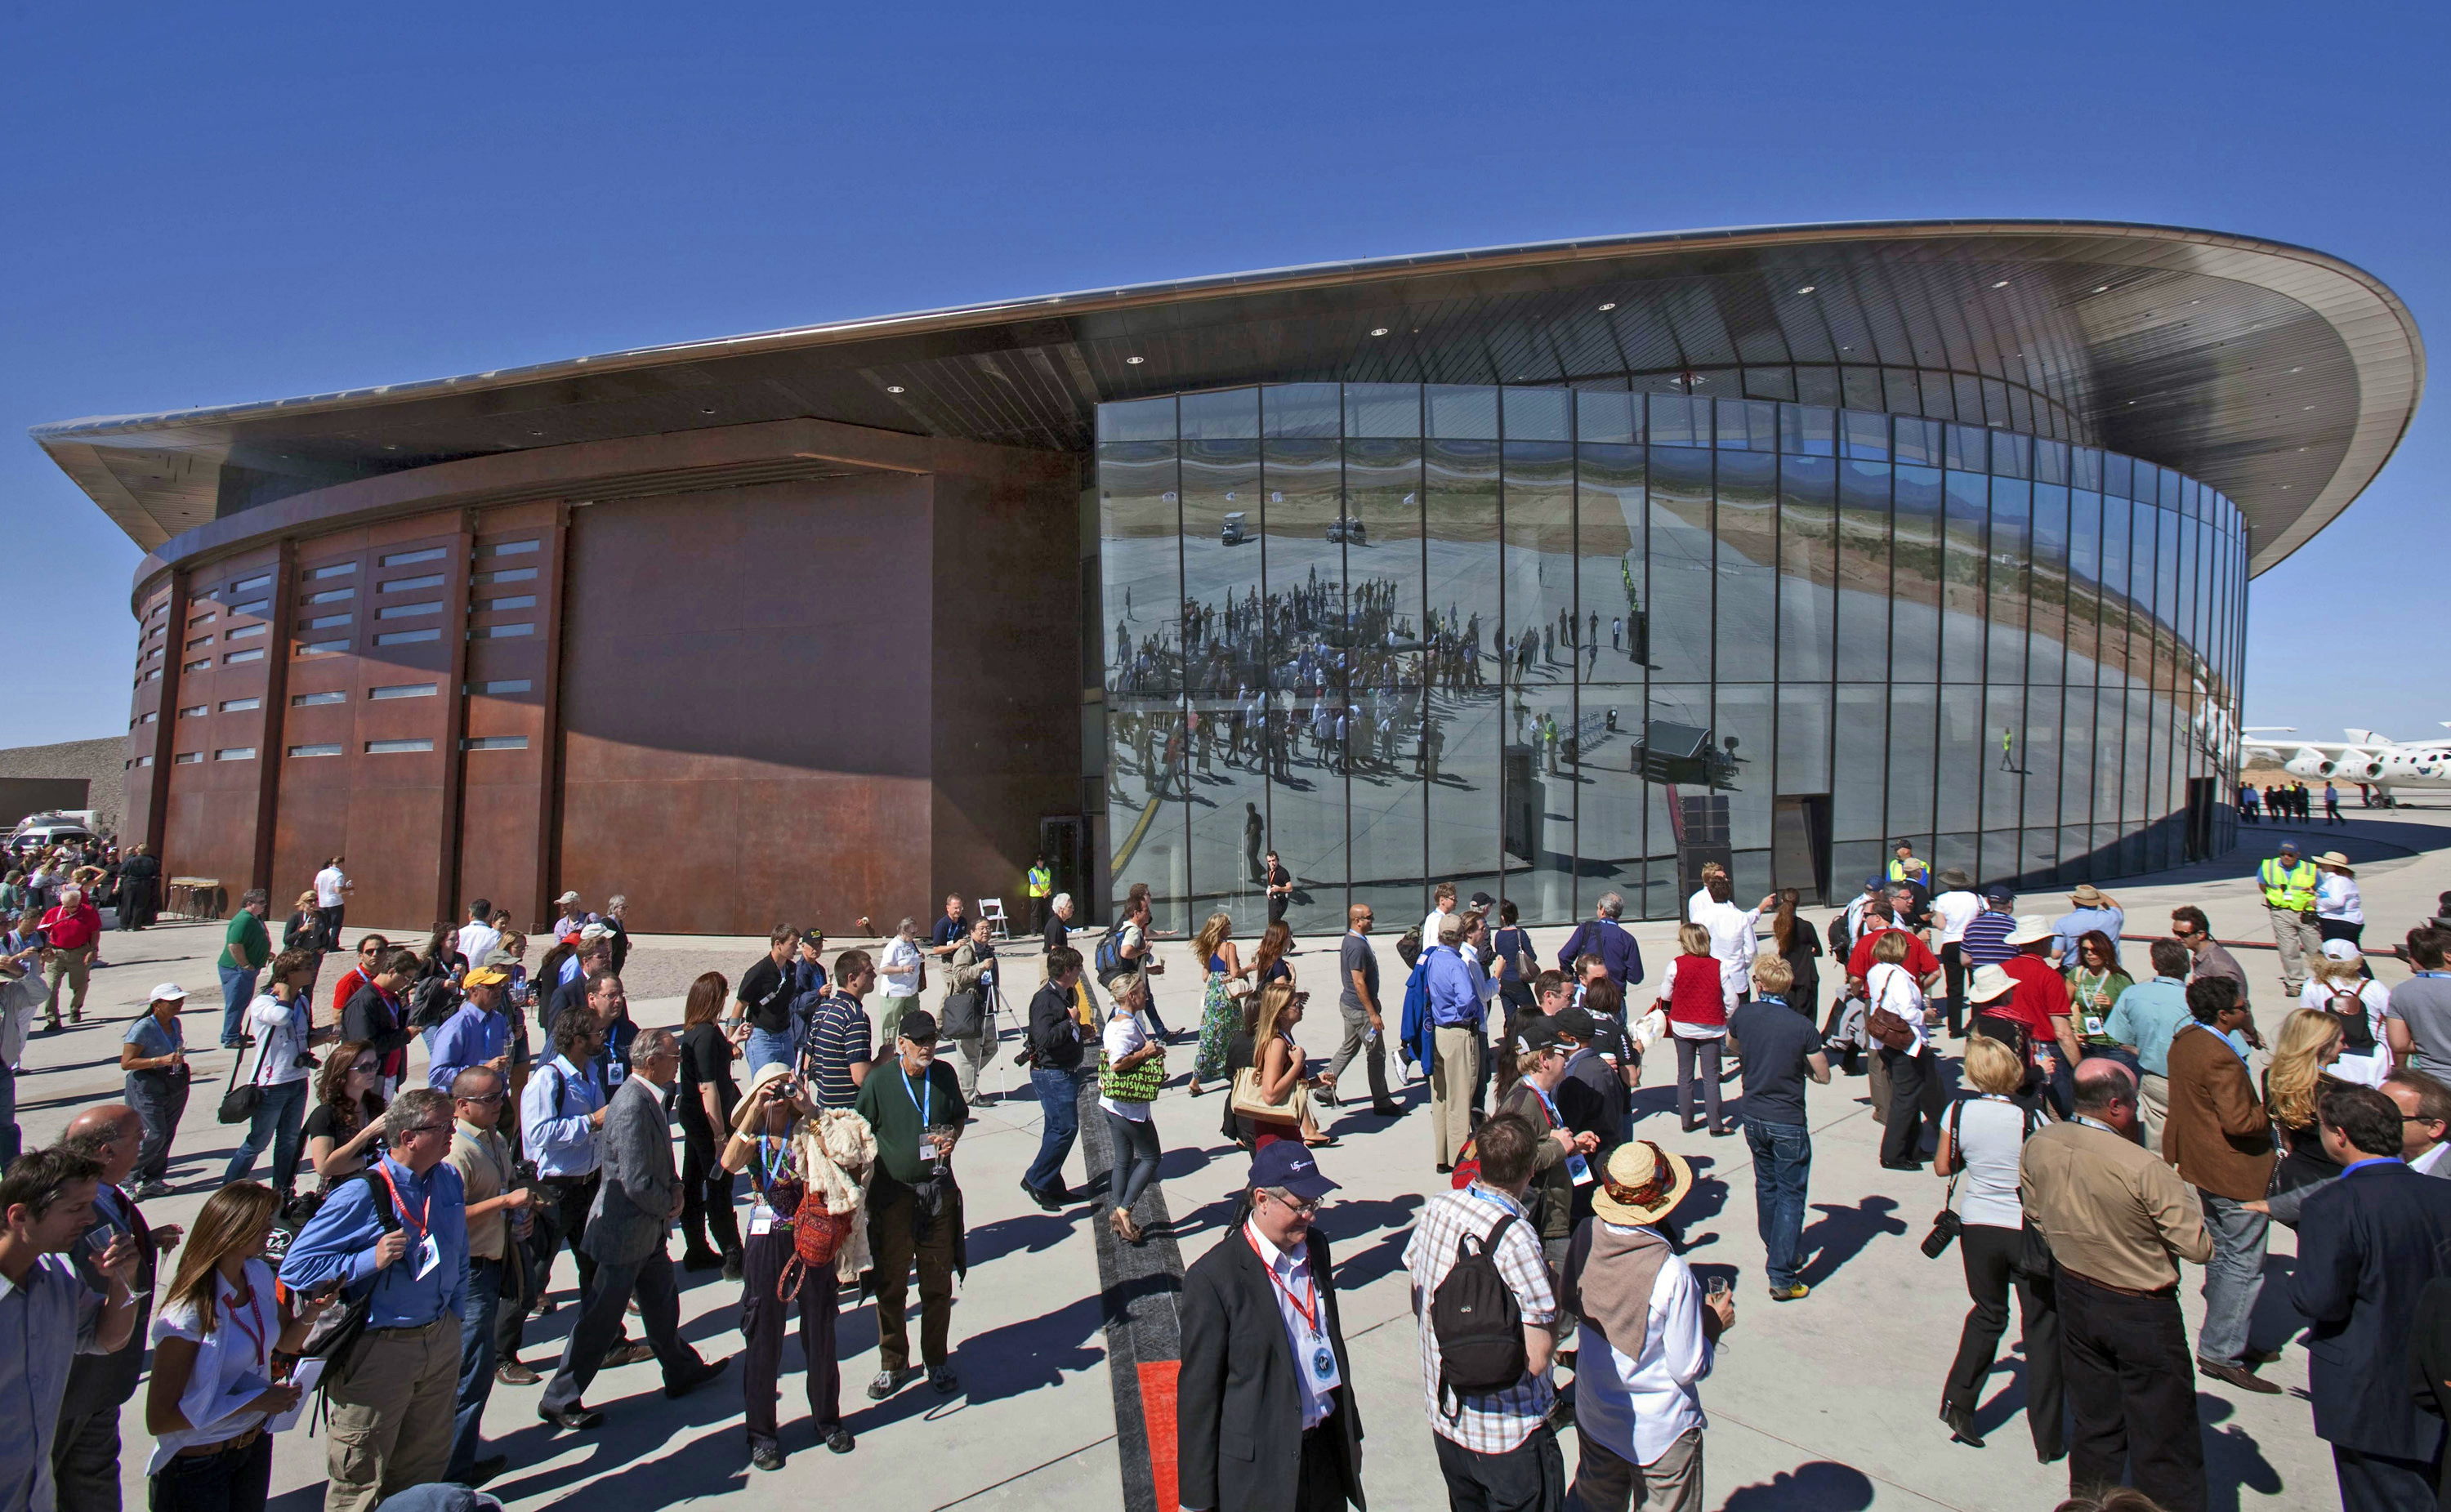 FILE - Guests stand outside the new Spaceport America hangar in Upham, N.M., Oct. 17, 2011. Operators of the New Mexico Spaceport Authority that runs Spaceport America are seeking greater confidentiality for tenants that include aspiring commercial s...